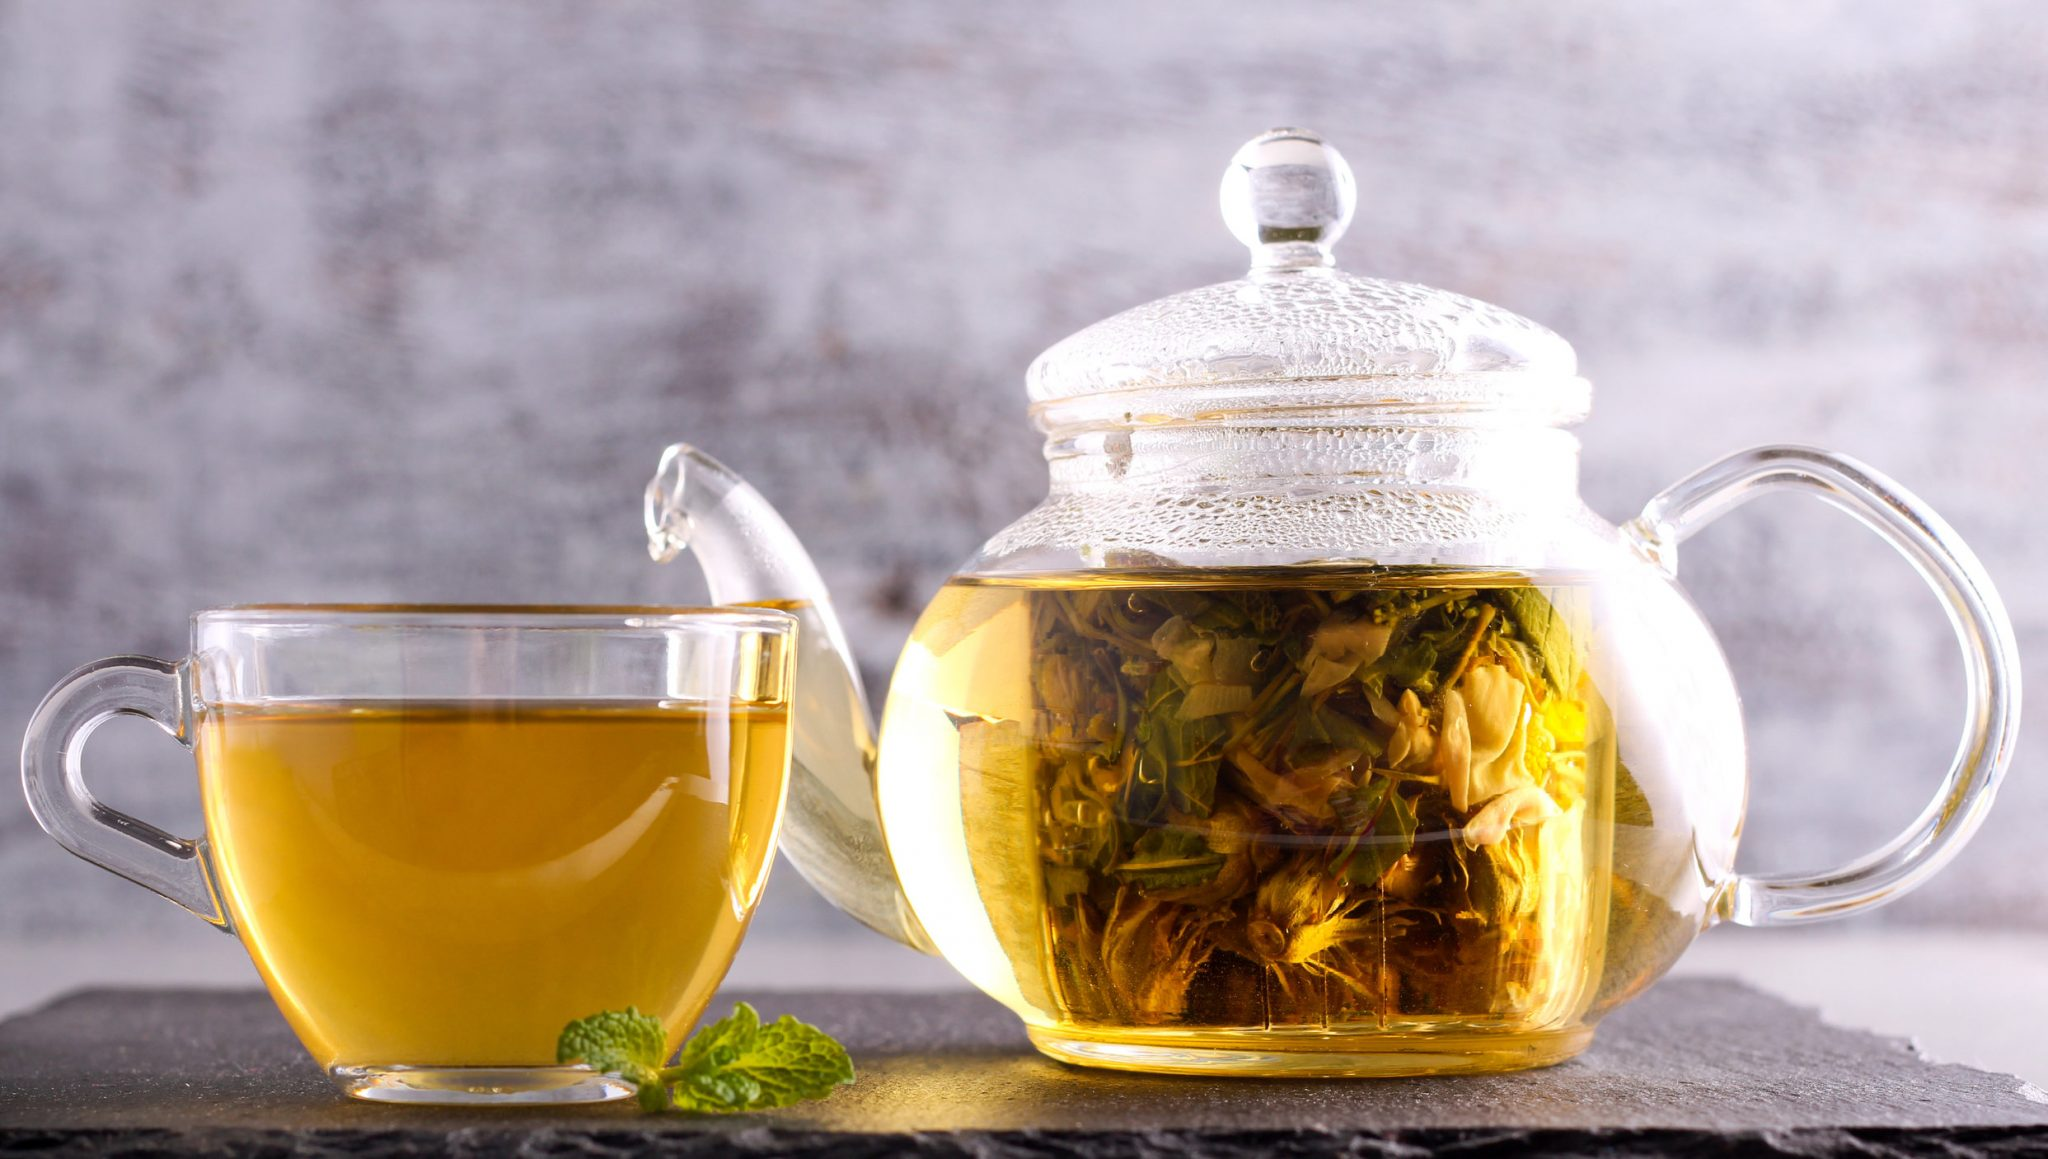 Fennel and Ginger Tea to Reduce Bloating